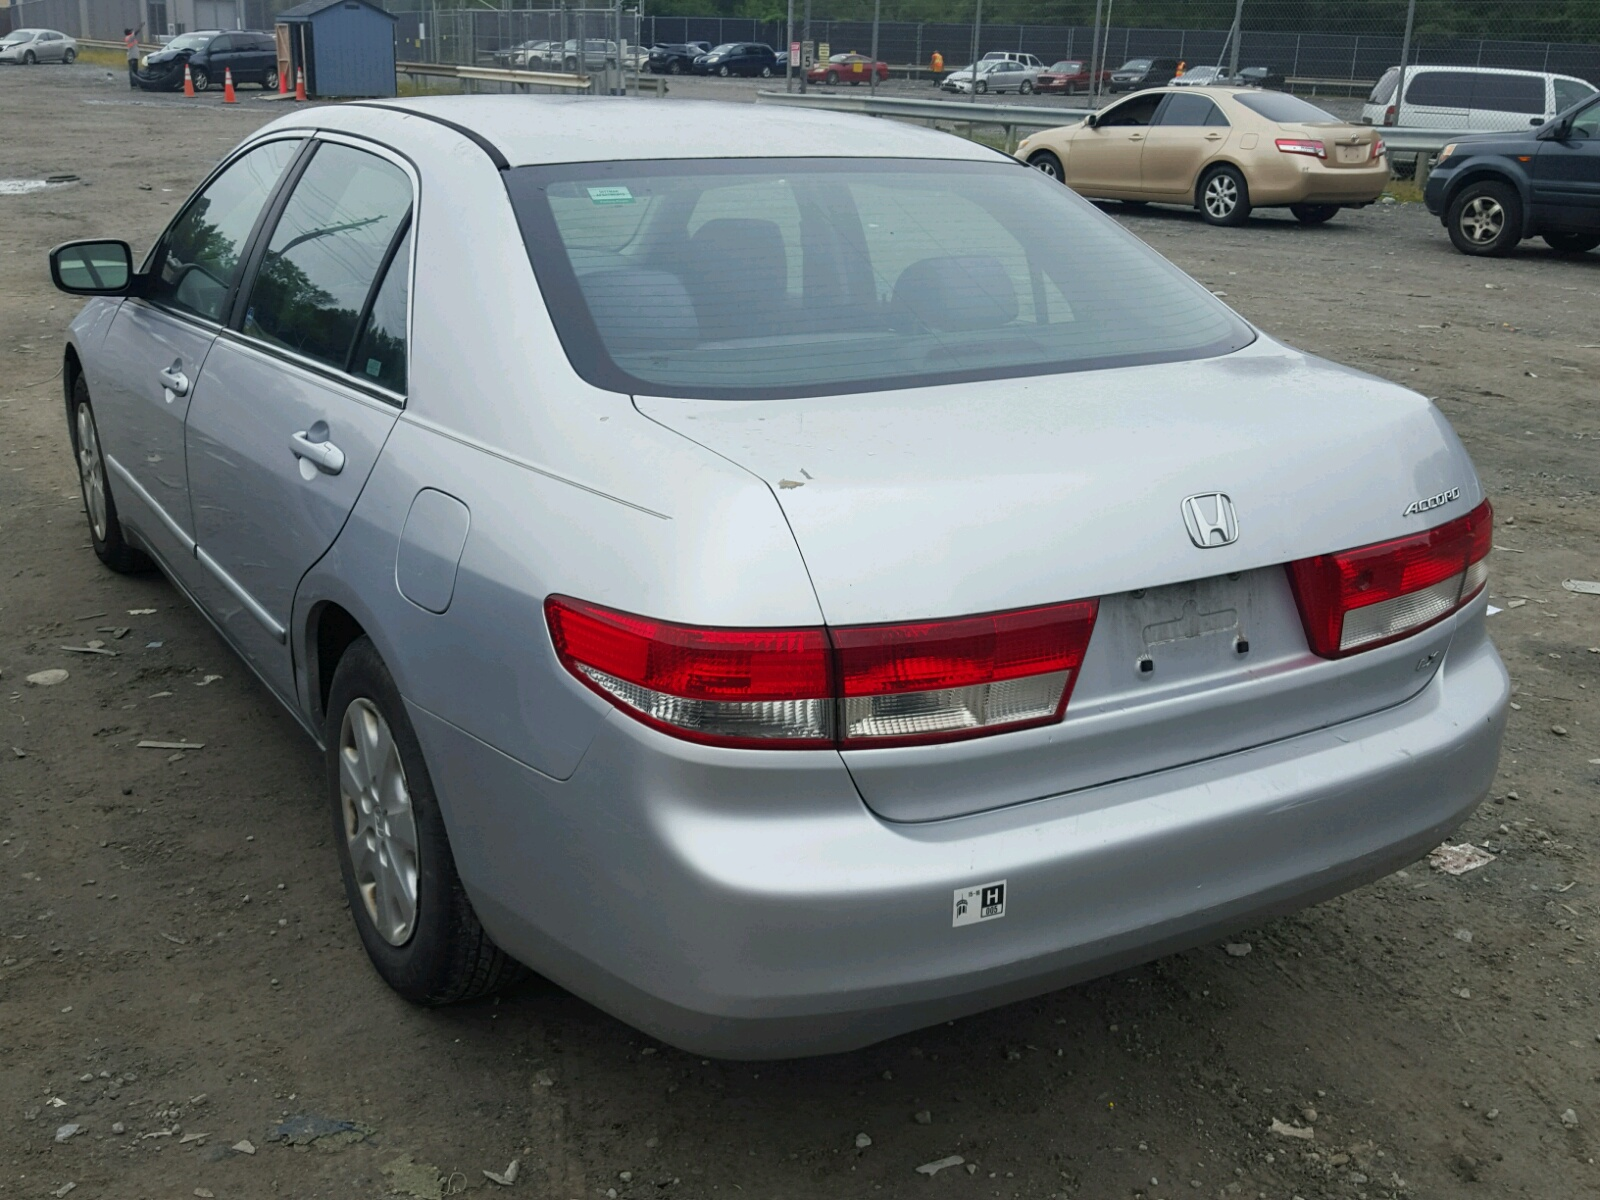 2003 Honda Accord Lx For Sale At Copart Waldorf Md Lot 45758488 Tail Light